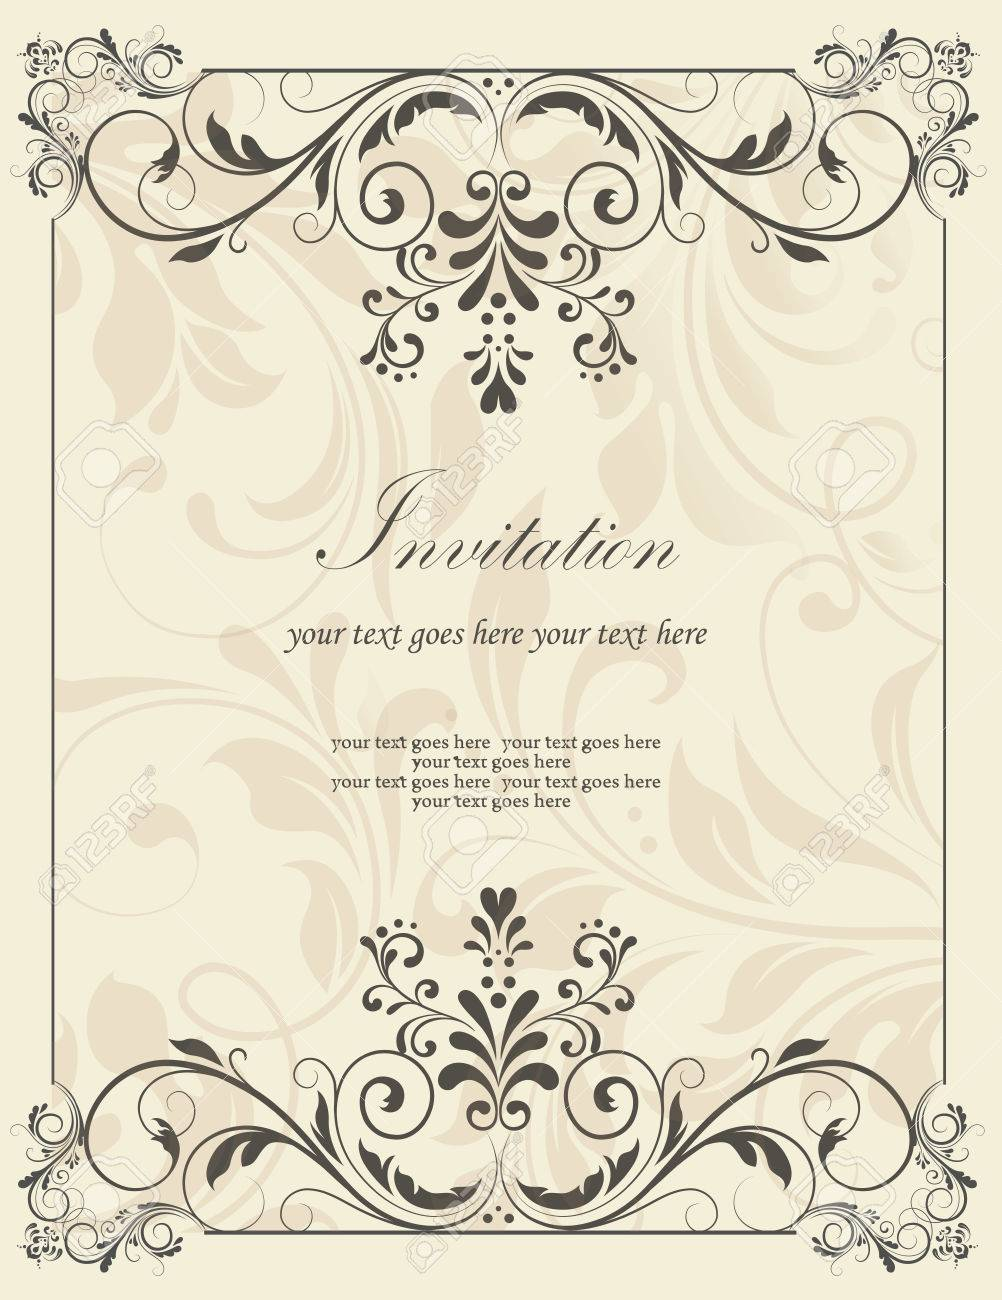 Vintage invitation card with ornate elegant retro abstract floral vector vintage invitation card with ornate elegant retro abstract floral design dark gray flowers and leaves on light gray background with frame borders stopboris Images